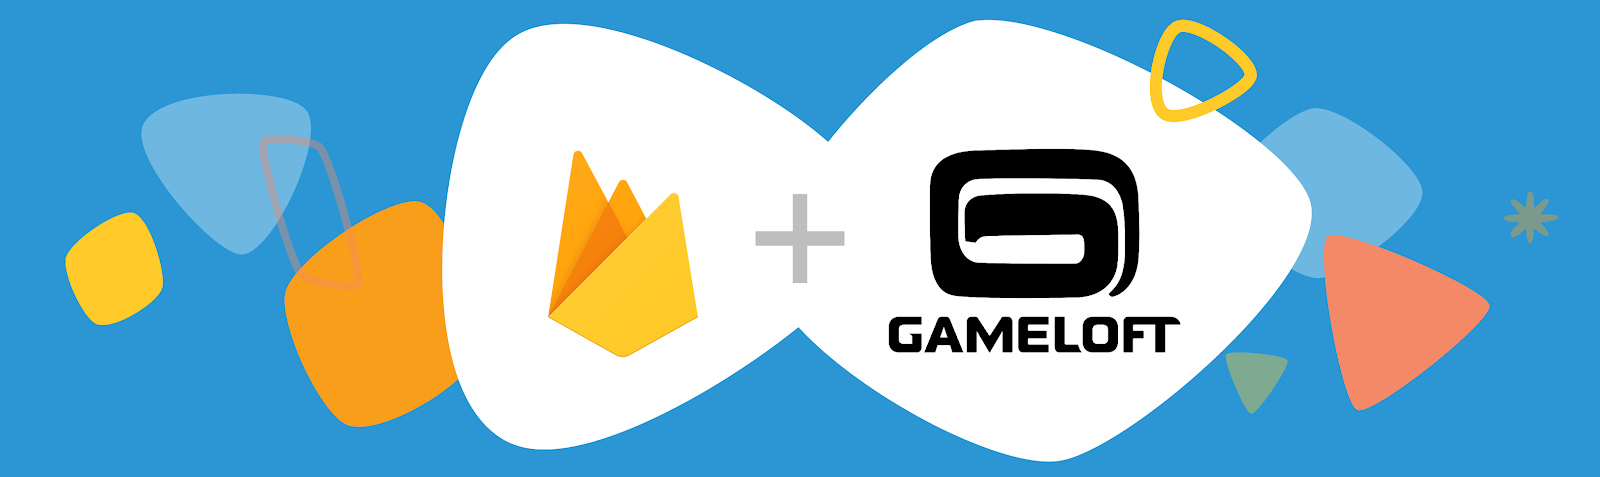 Firebase banner. Illustration of a Firebase and Gameloft logos